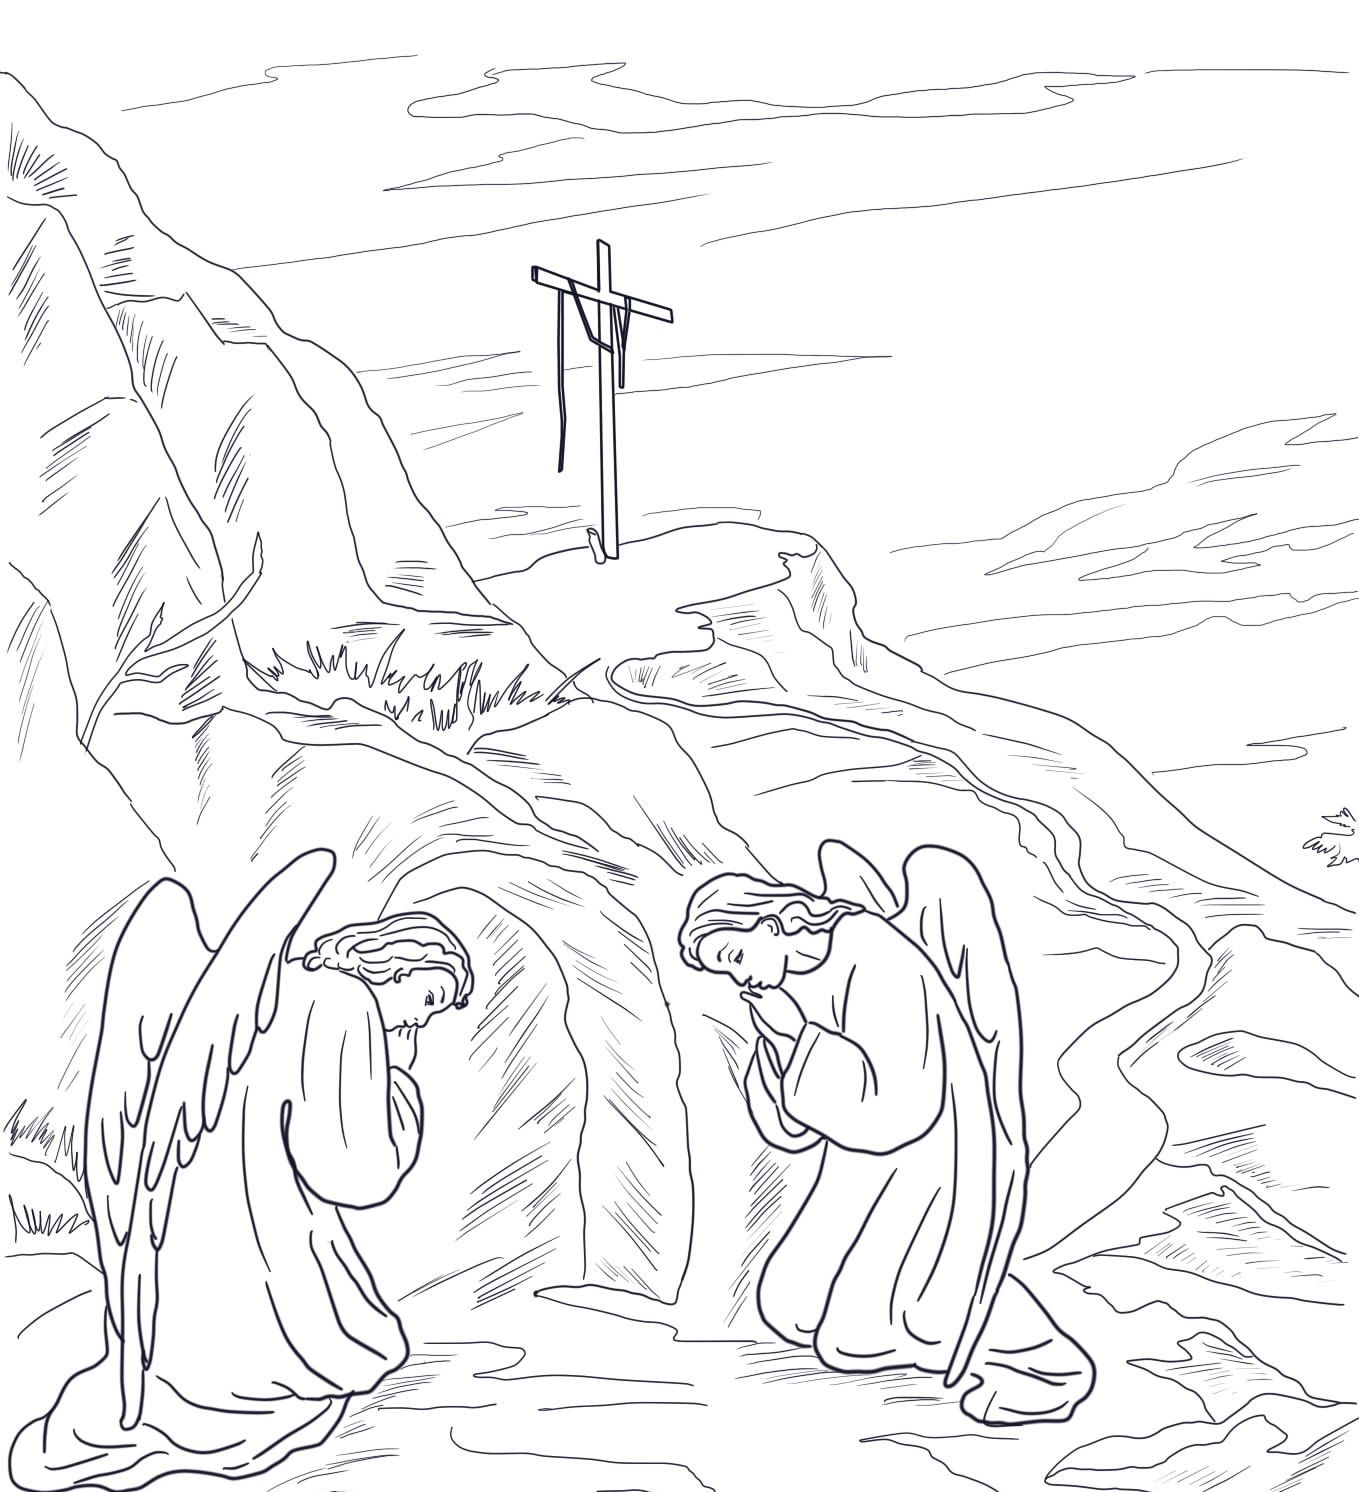 Empty Tomb Coloring Page From Jesus Resurrection Category Select 27278 Printable Crafts Of Cartoons Nature Animals Bible And Many More